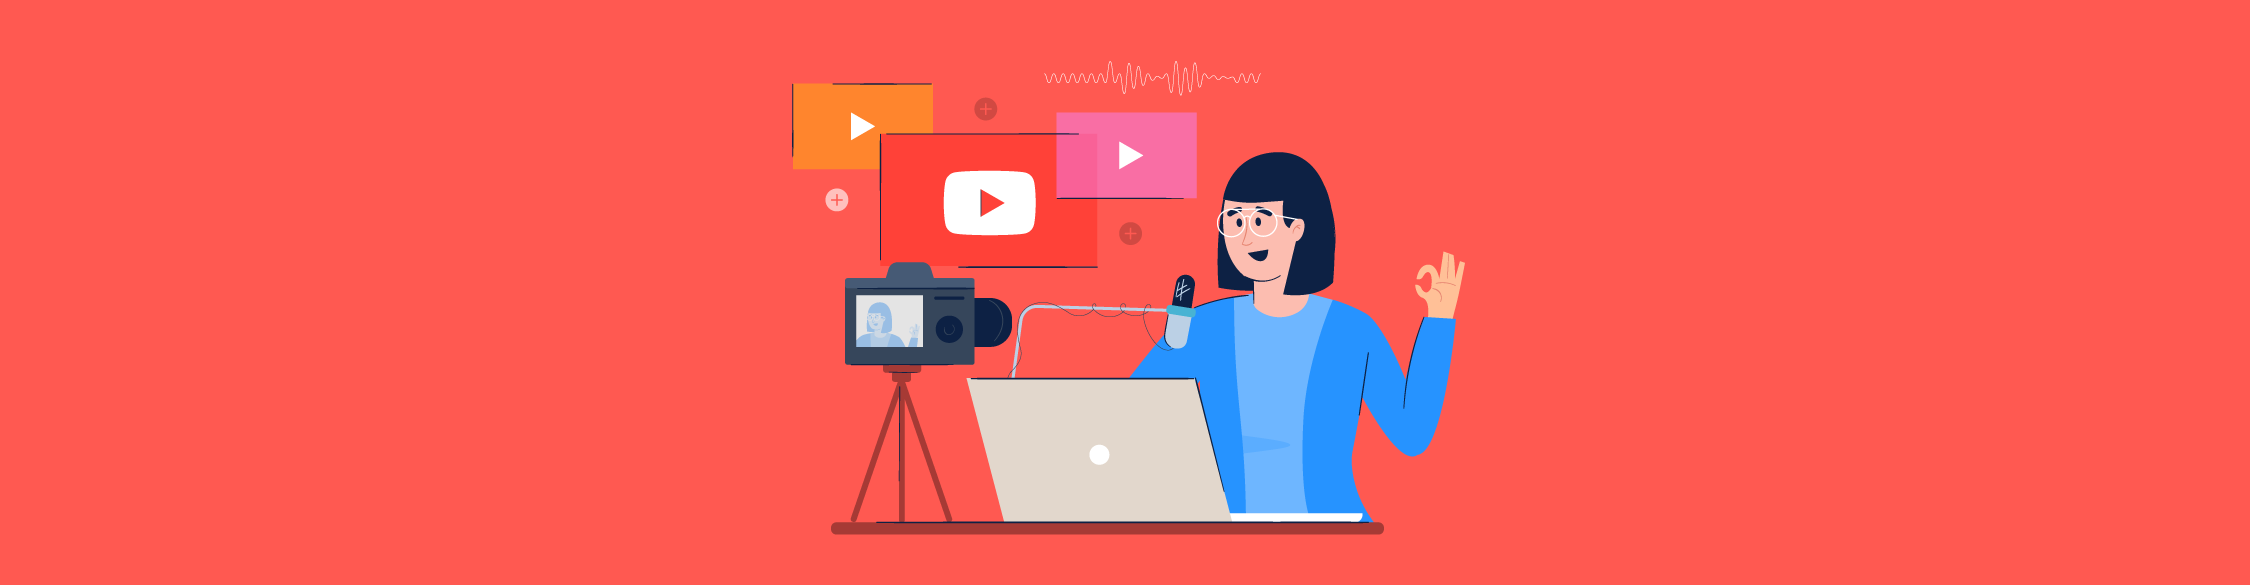 How to Start a Vlog: Guide for Beginners to YouTube (for 2021)